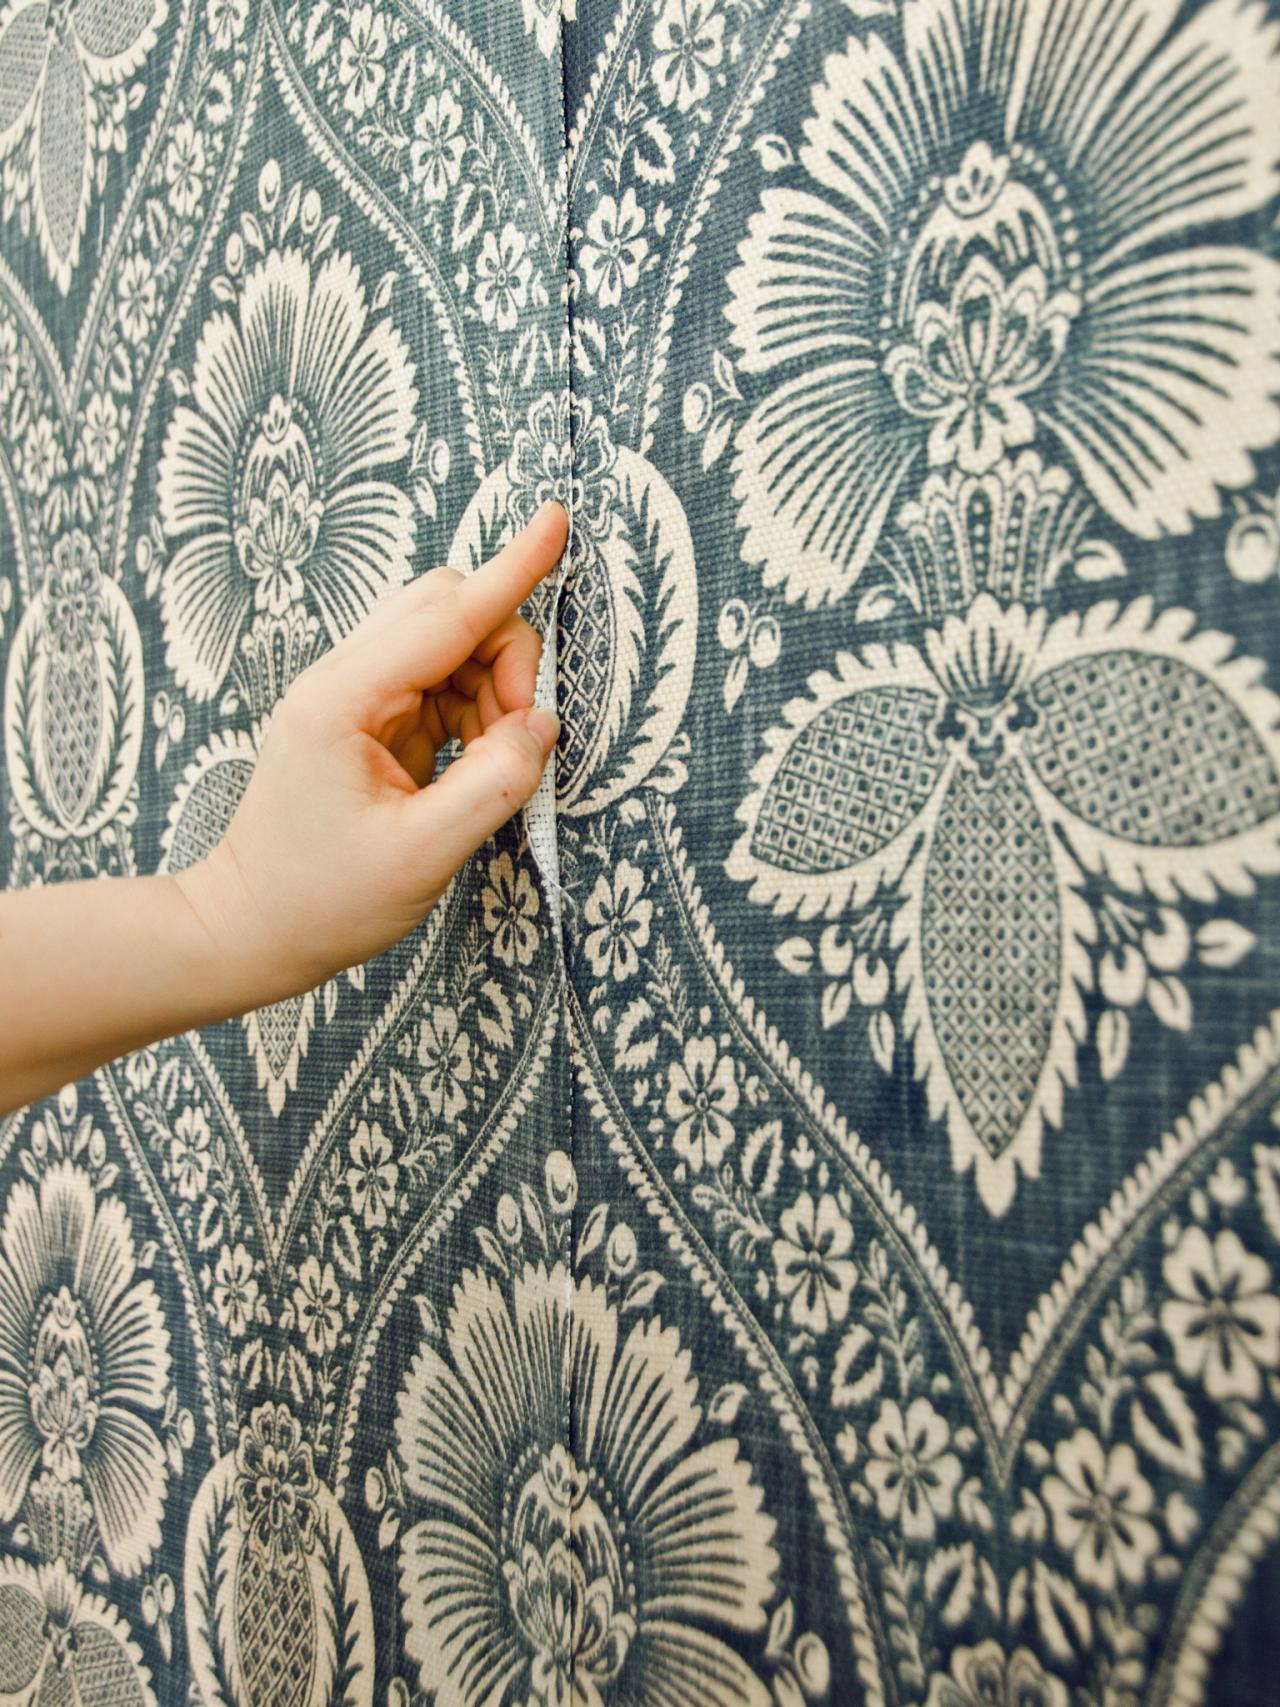 How To Apply Wallpaper To Wall